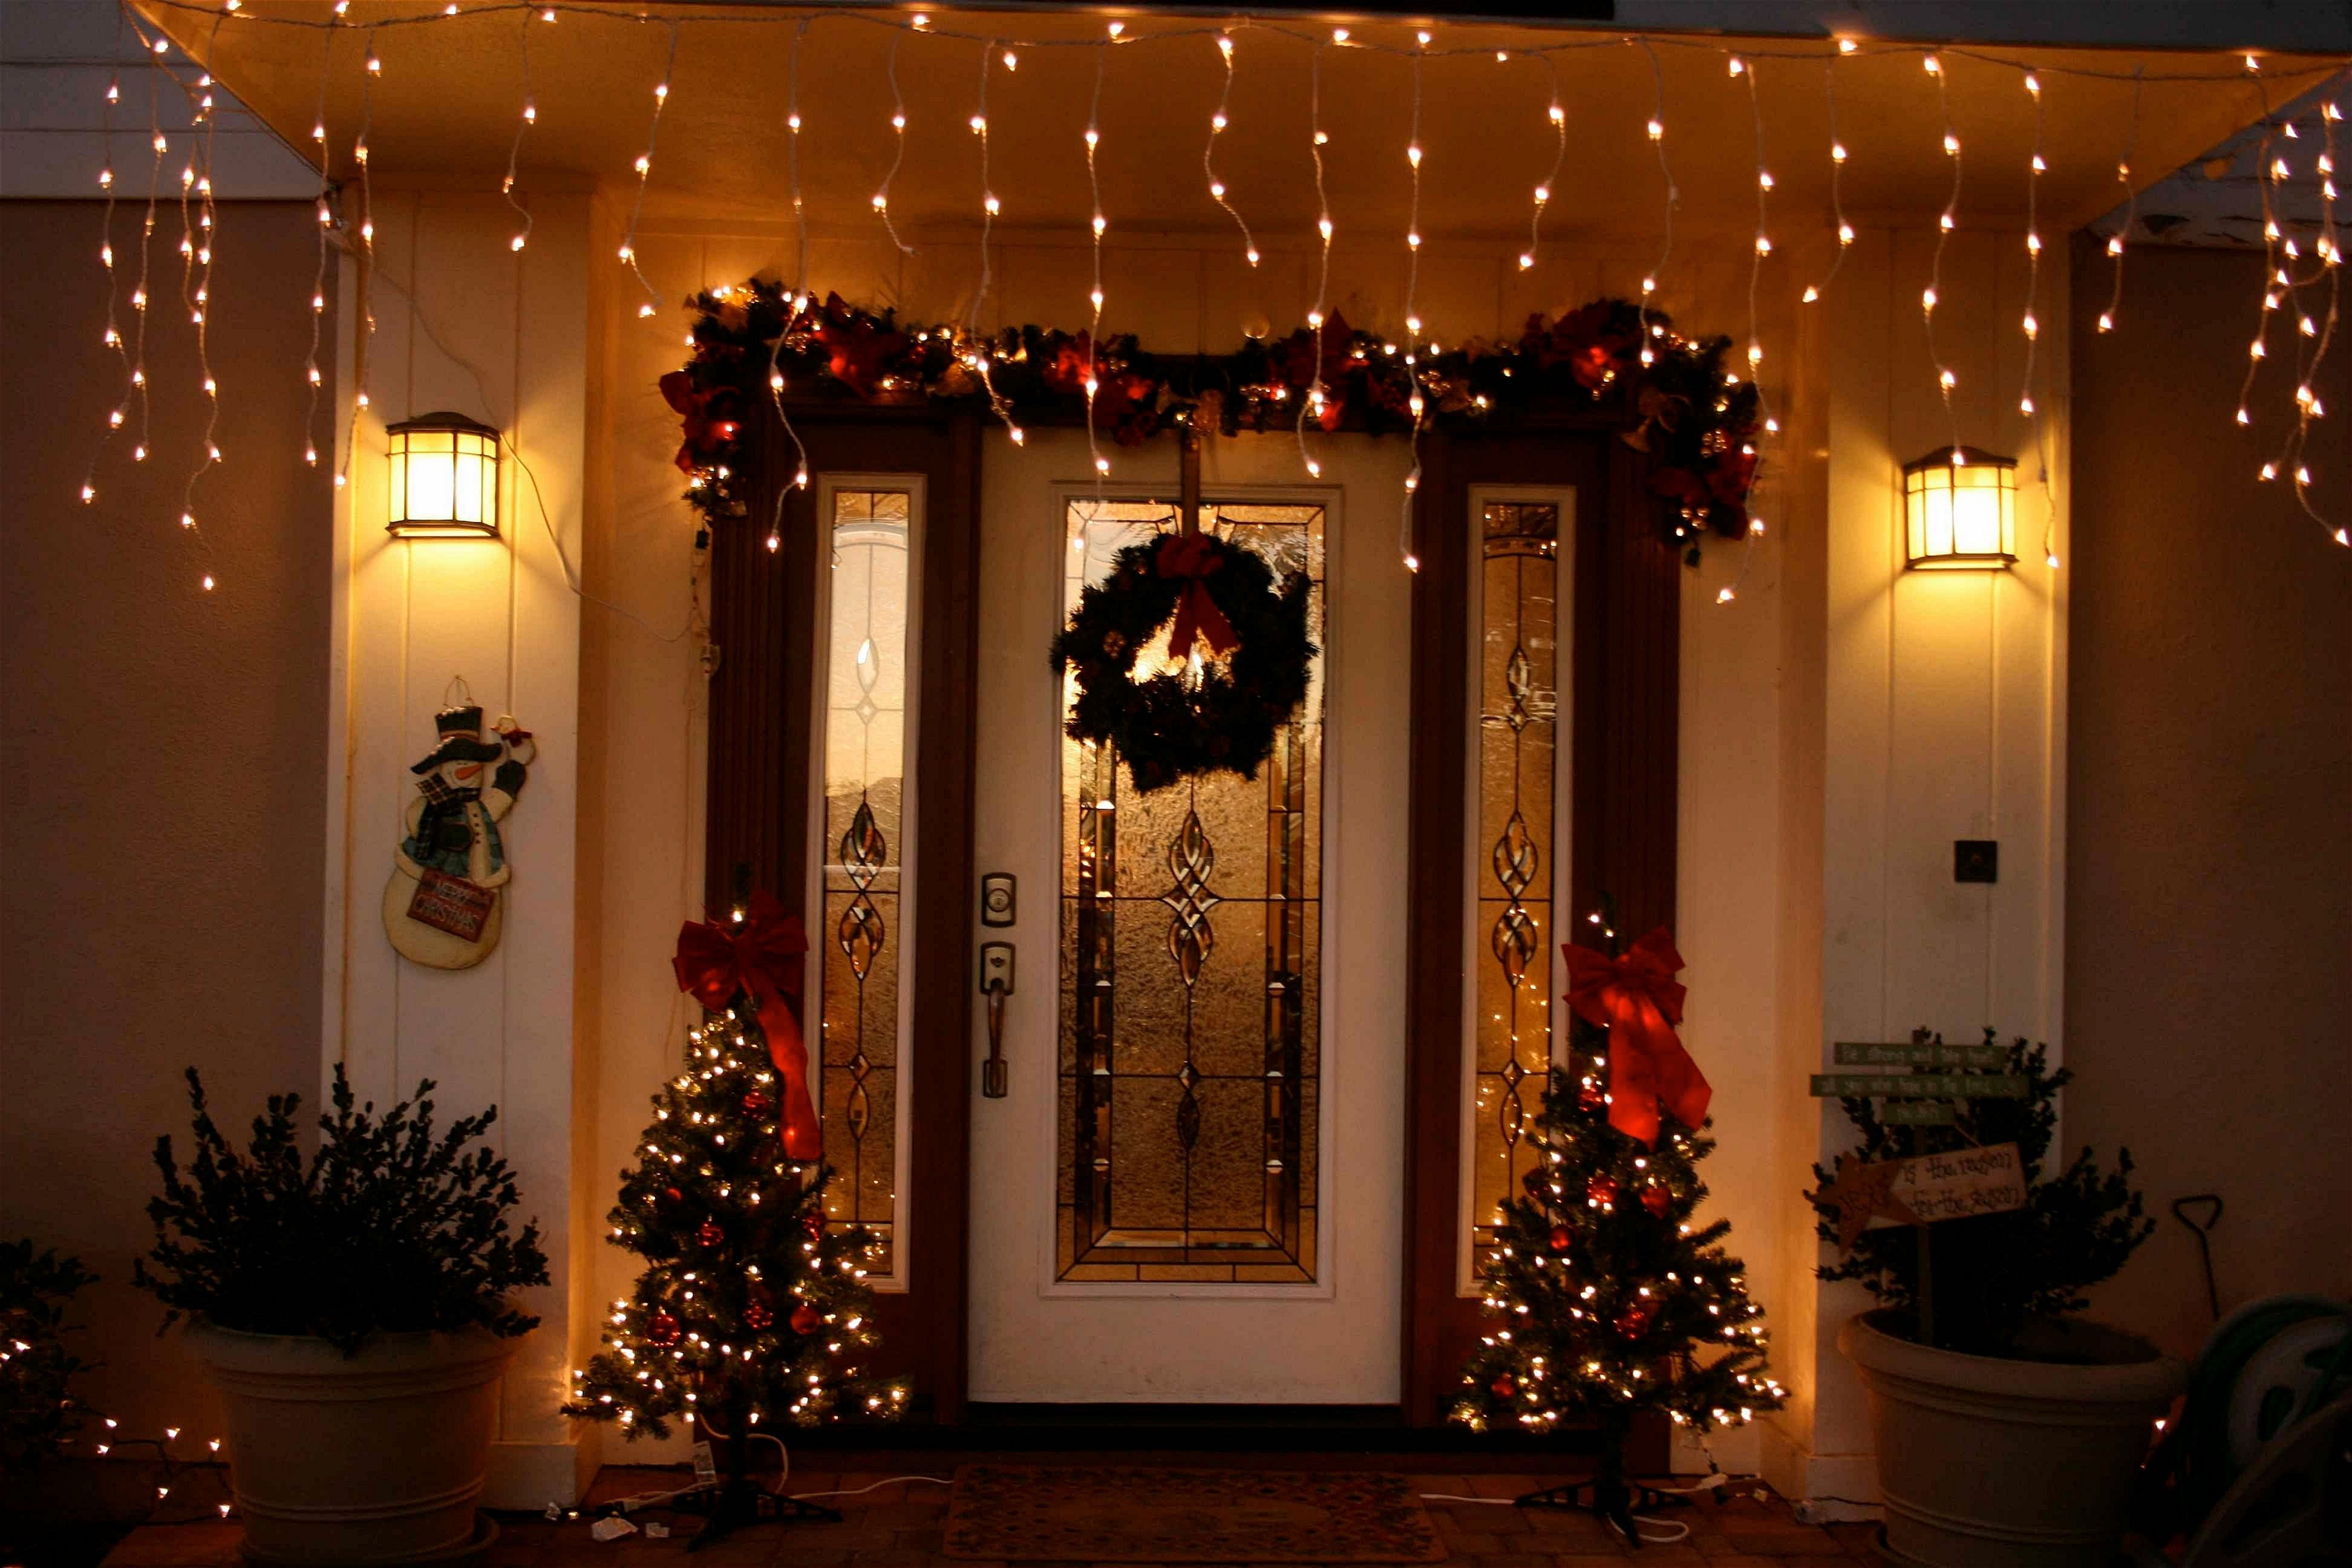 Brilliant 15 Best Incredible Apartment Decorating Ideas For Chri Decorating With Christmas Lights Beautiful Christmas Decorations Indoor Christmas Decorations